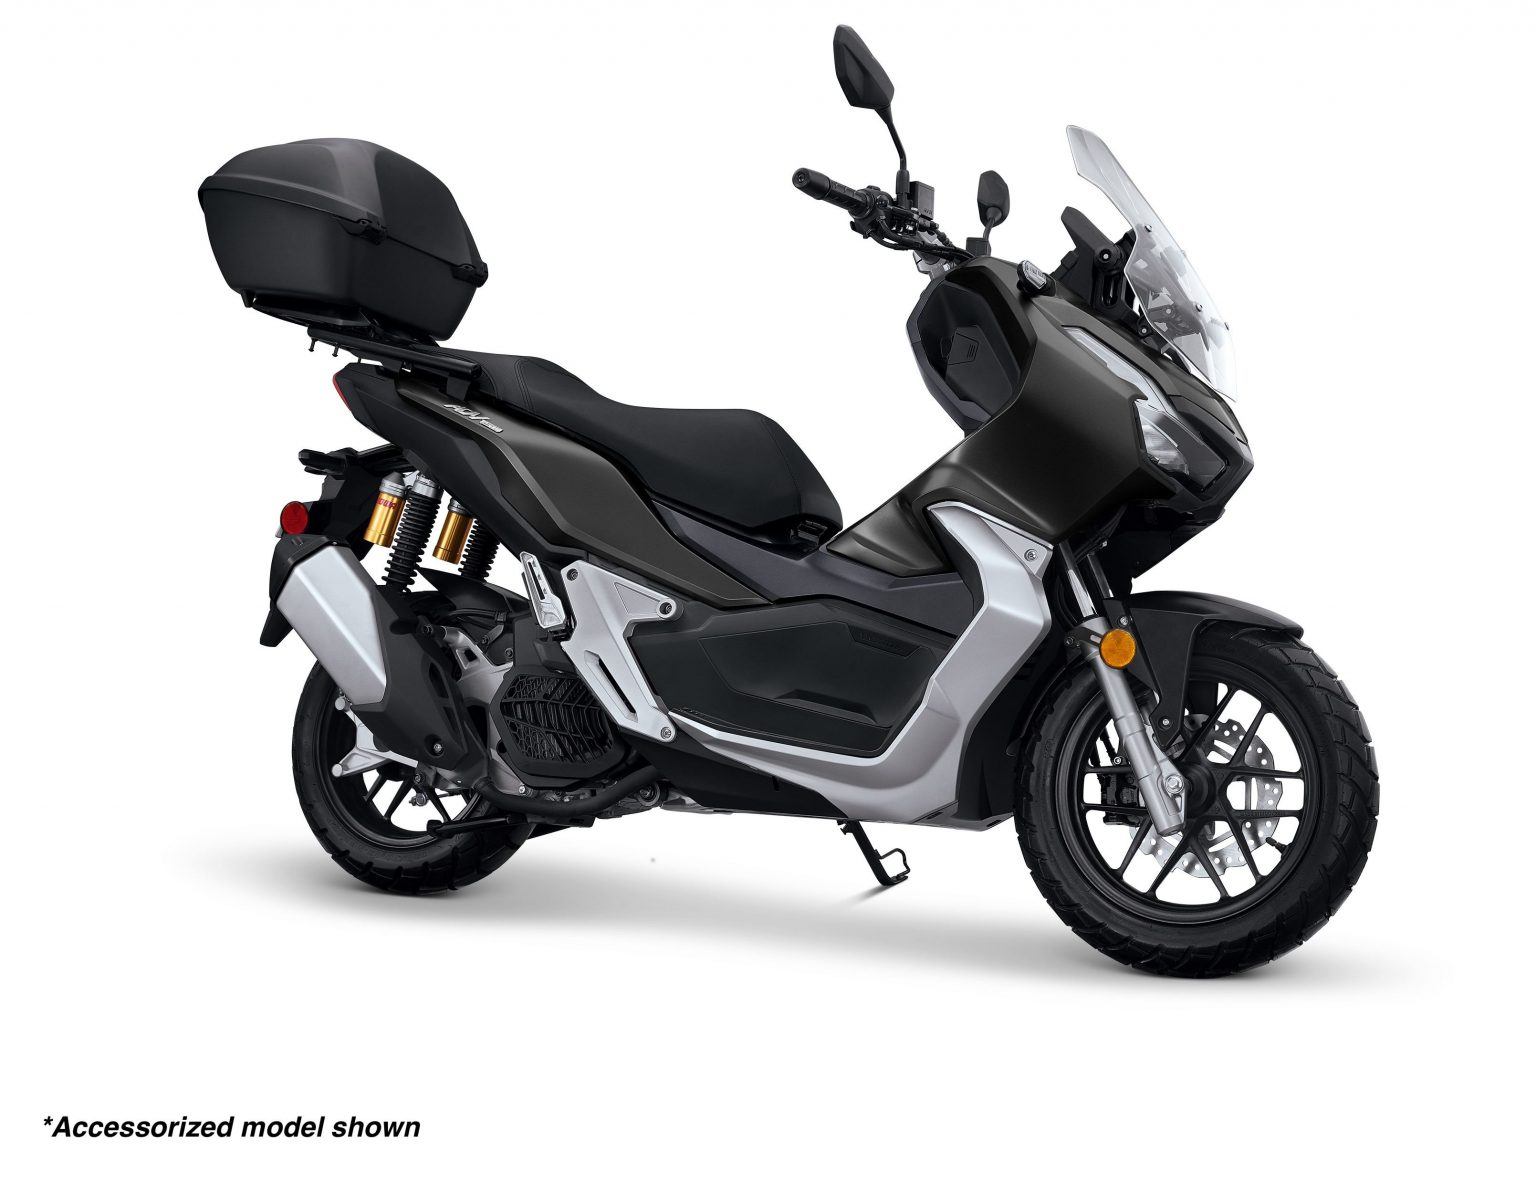 The Honda Adv150 Will Be Available In June And Cost $4,299